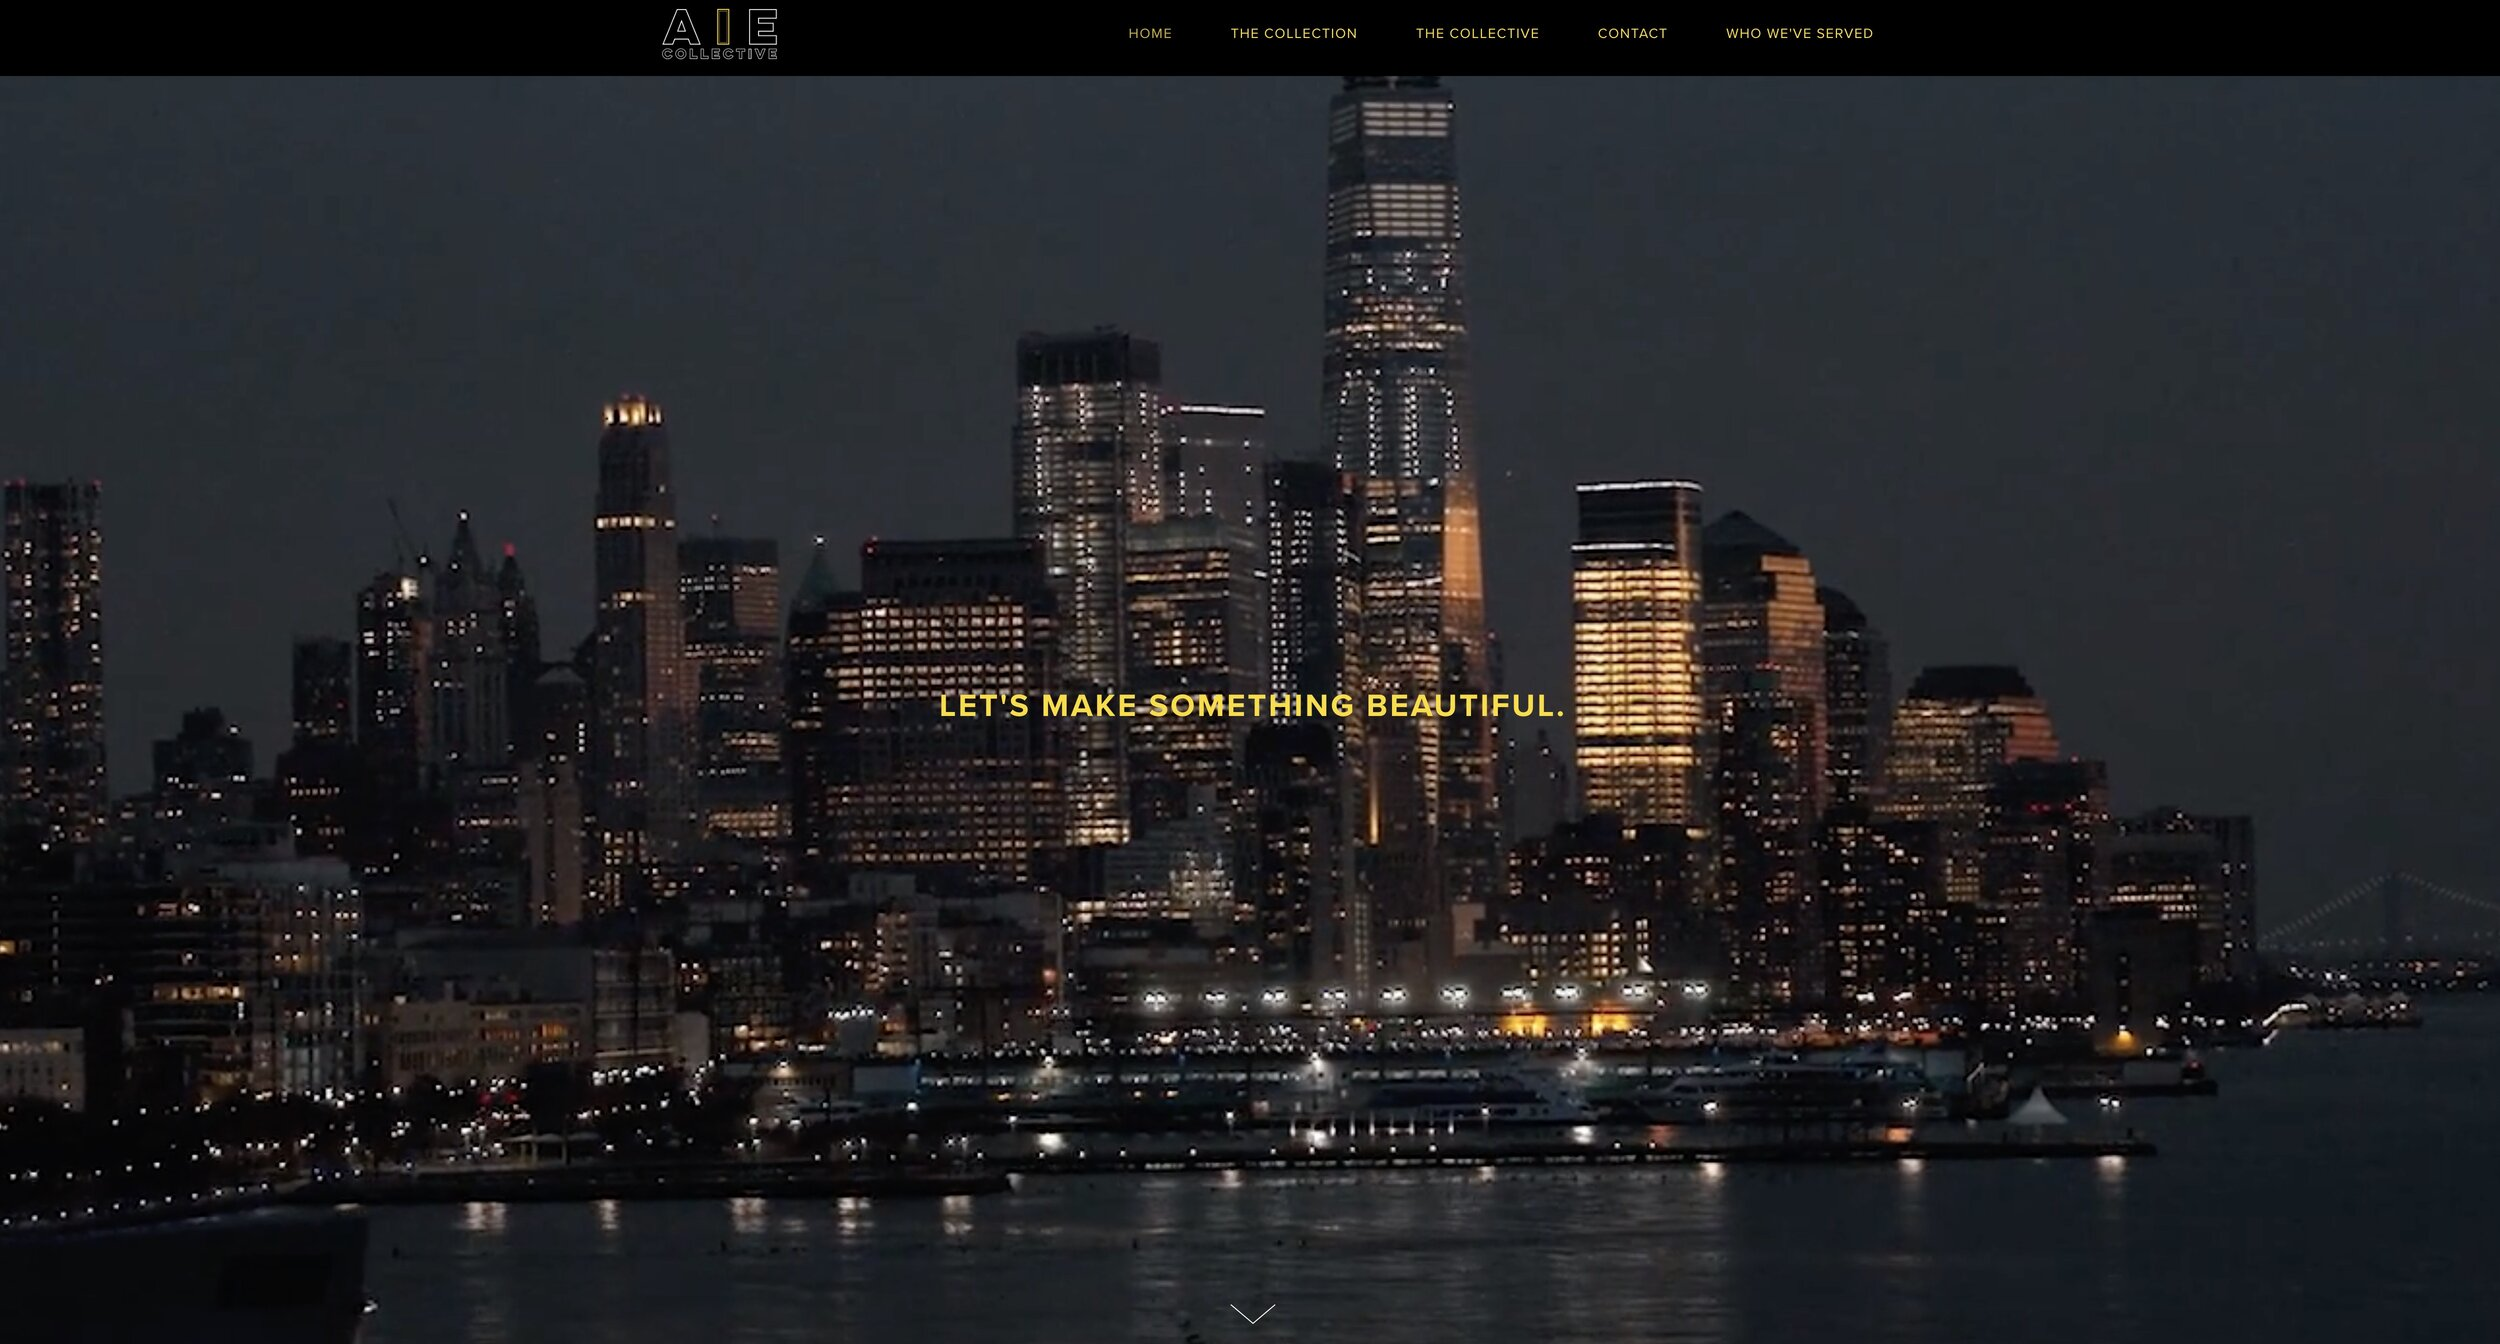 The photo features New York City and the cinematography by AIE collective. This is a screenshot of the intro video on the AIE website designed by ServeCreate Squarespace Web Design House